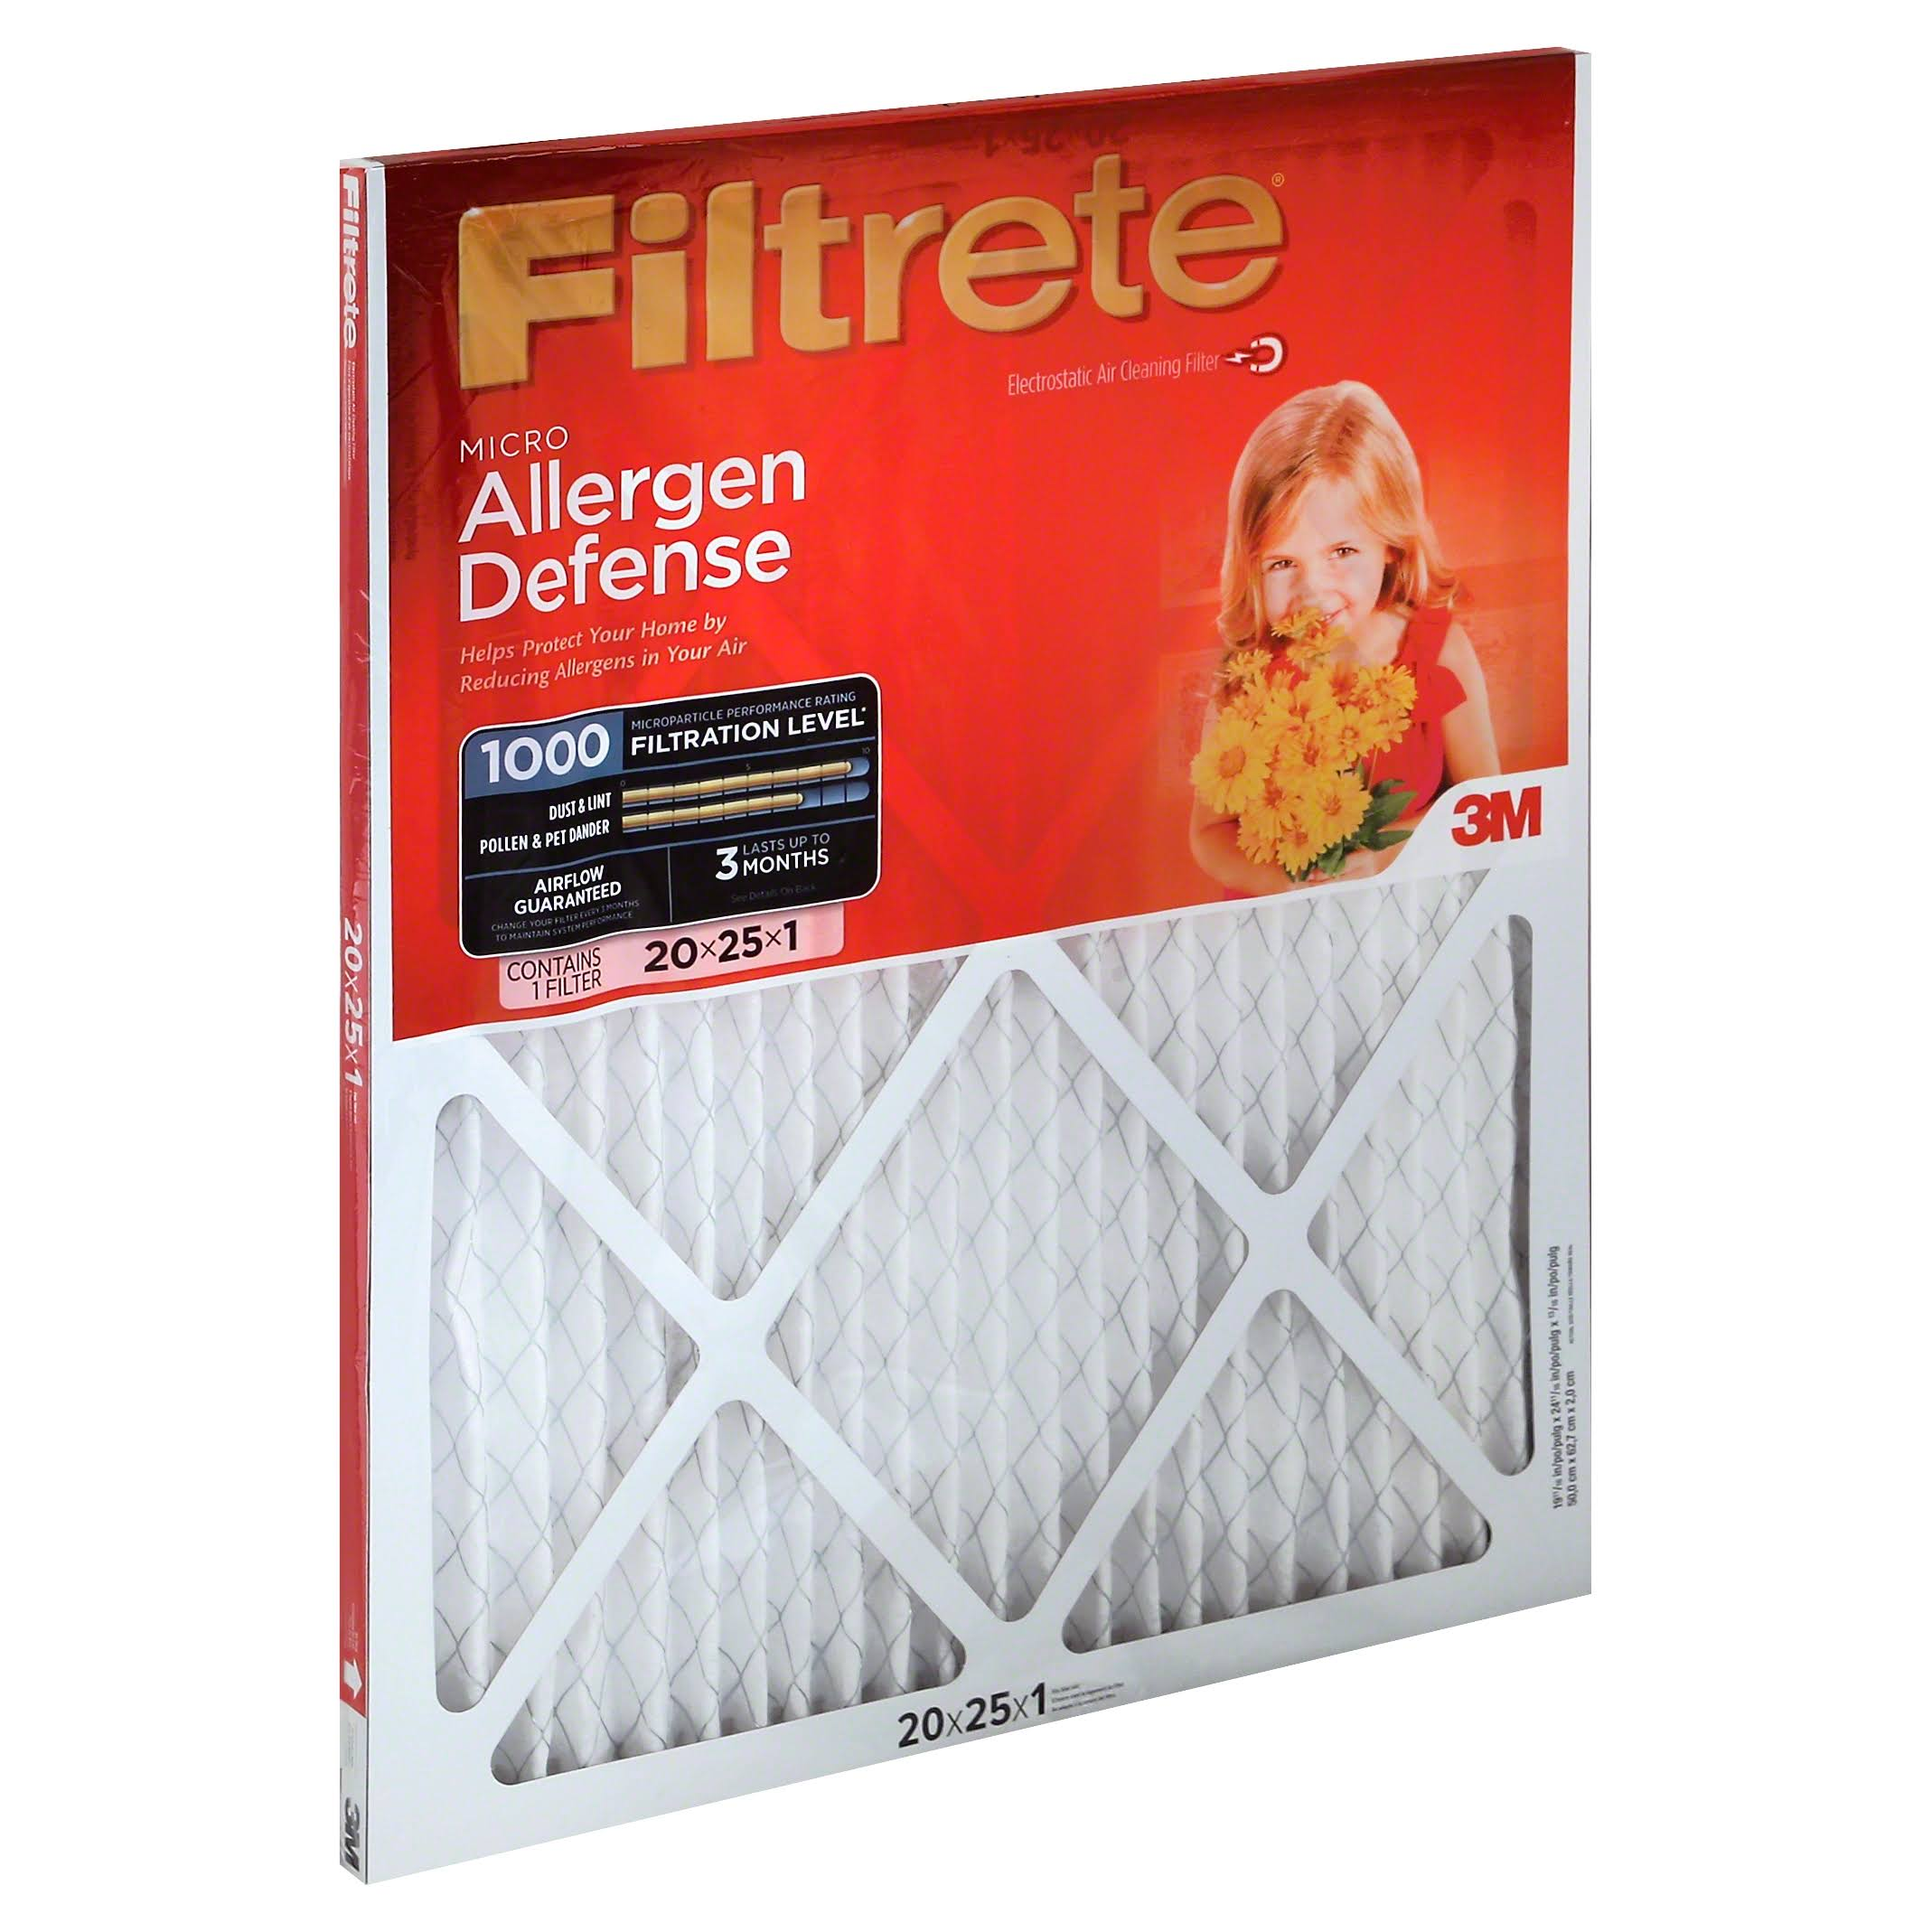 "3M Filtrete Micro Allergen Defense Filter - 20"" x 25"", 6 Pack"